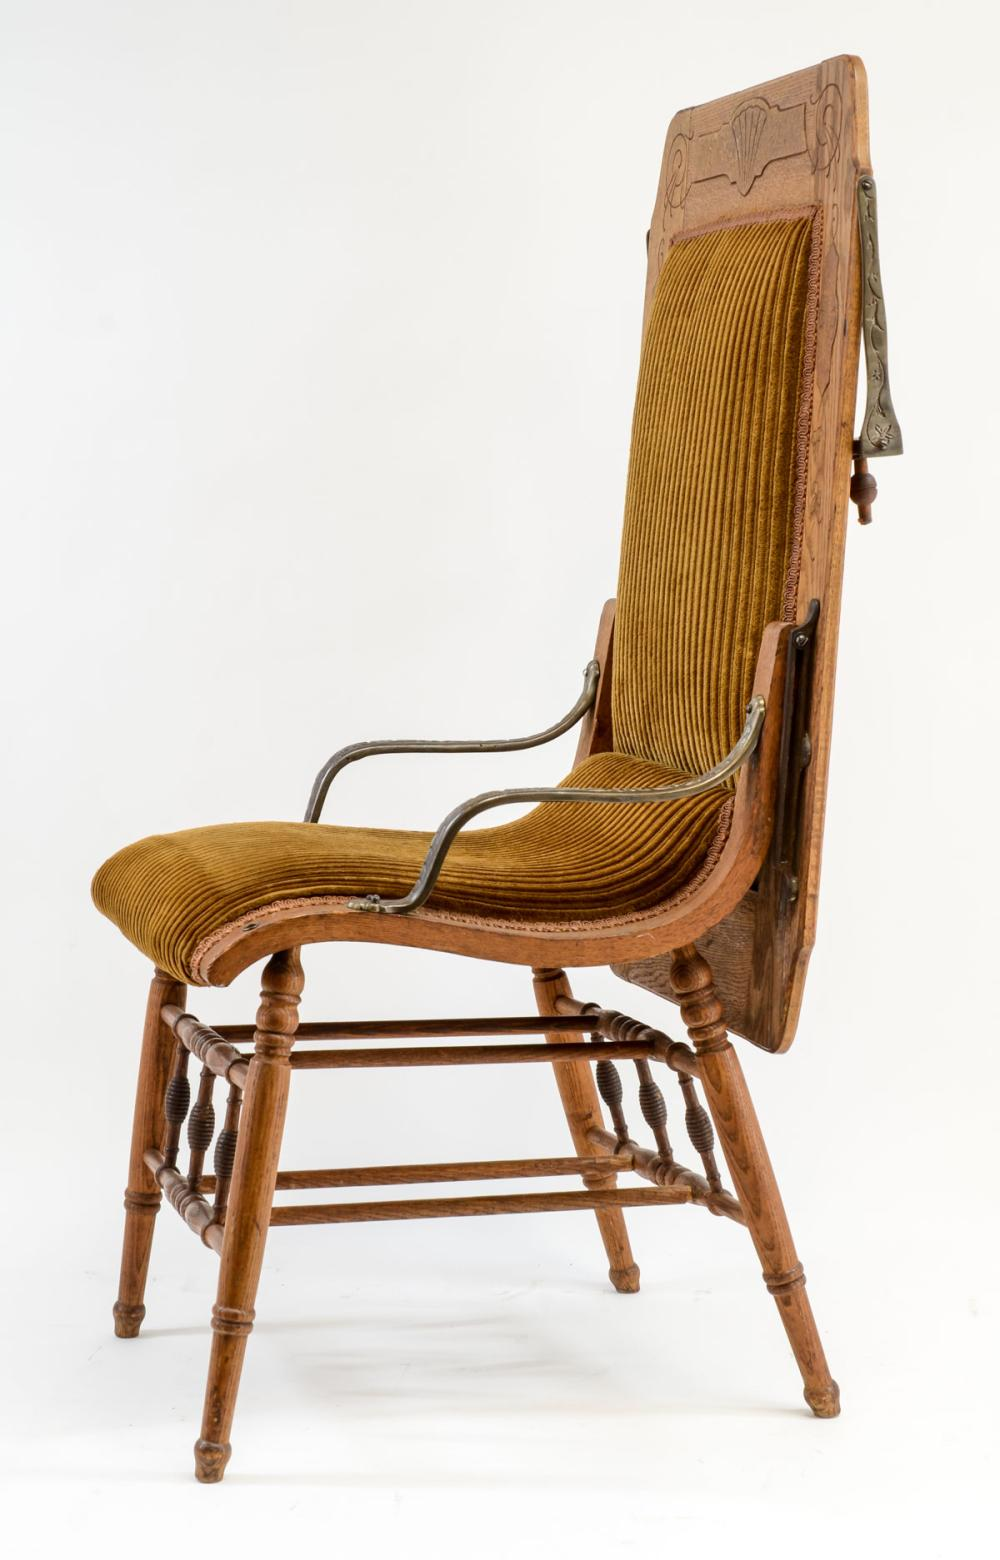 Patent Furniture: Convertible Chair